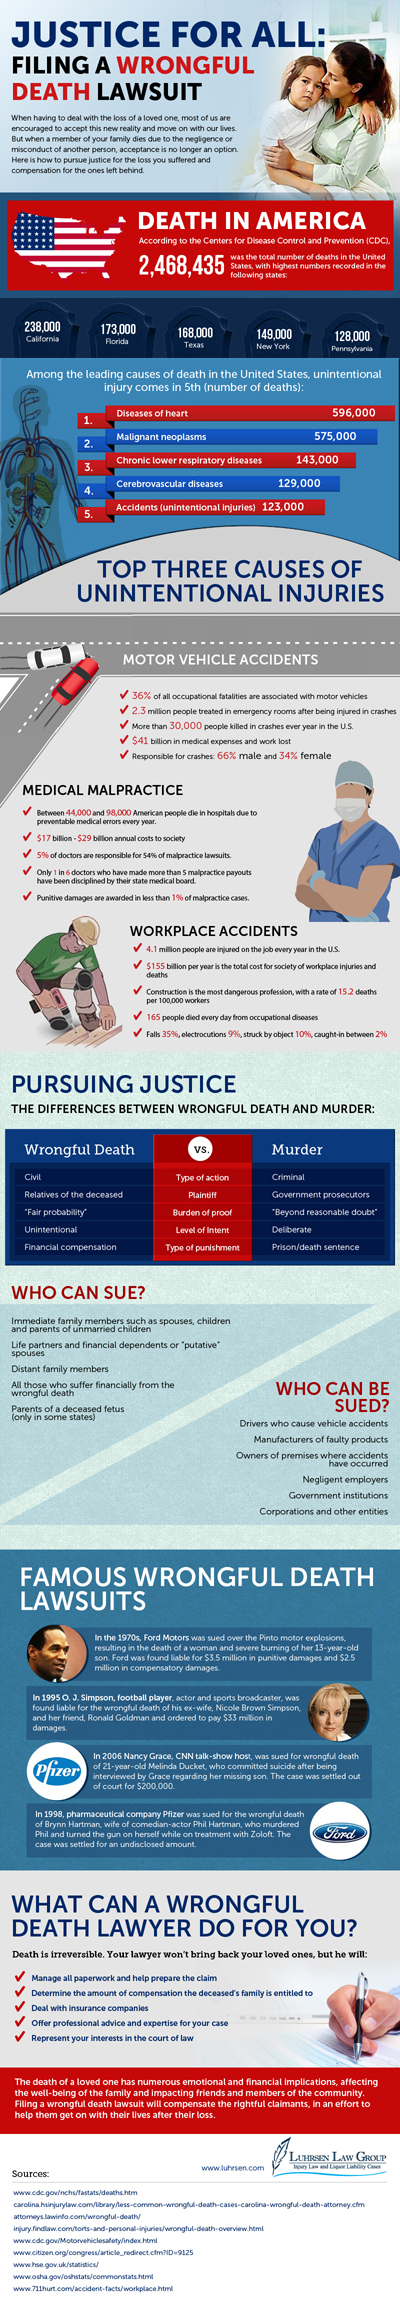 Filing A Wrongful Death Lawsuit